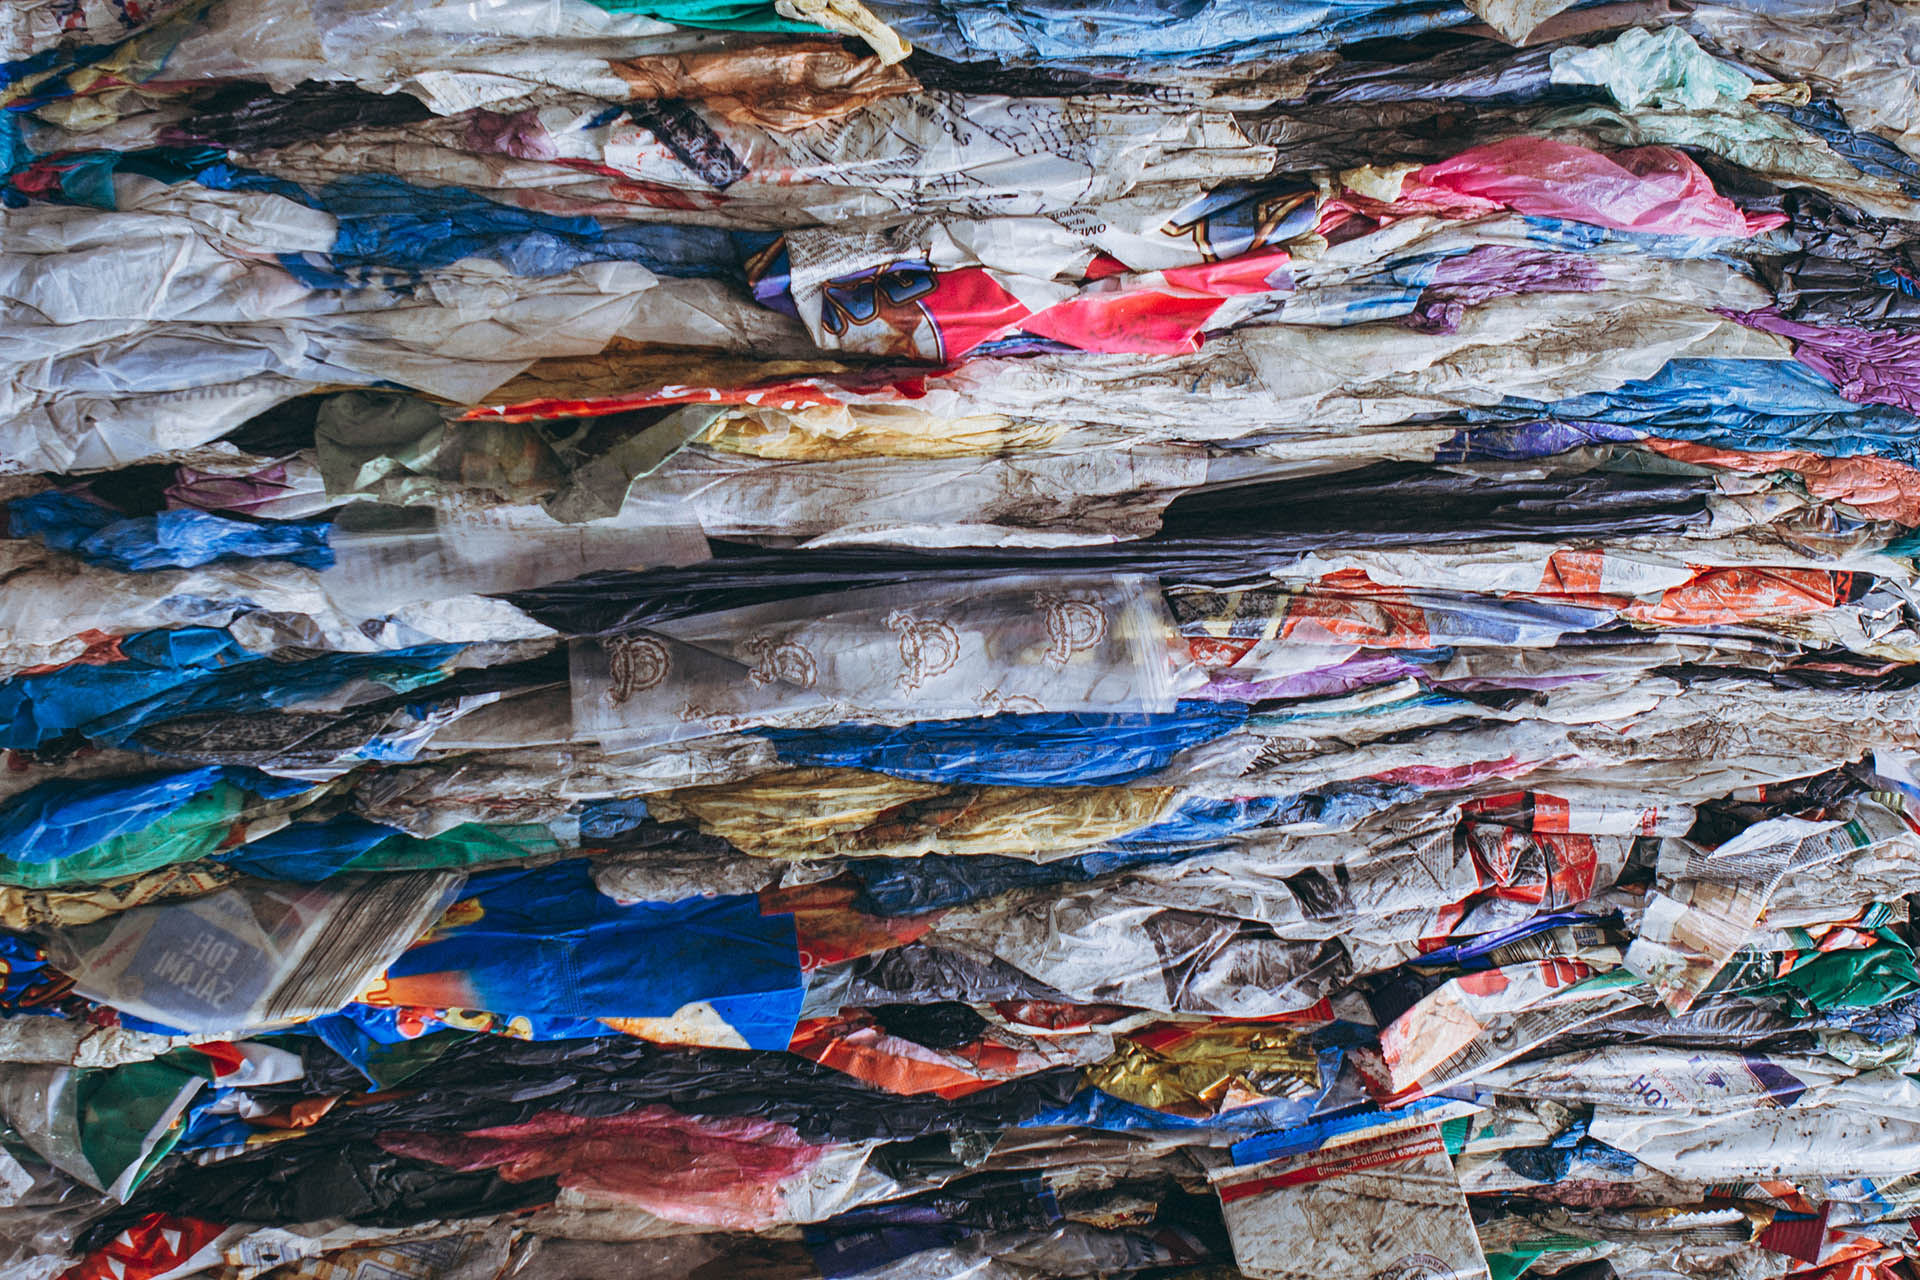 RECYCLING & WASTE MANAGEMENT SERVICES